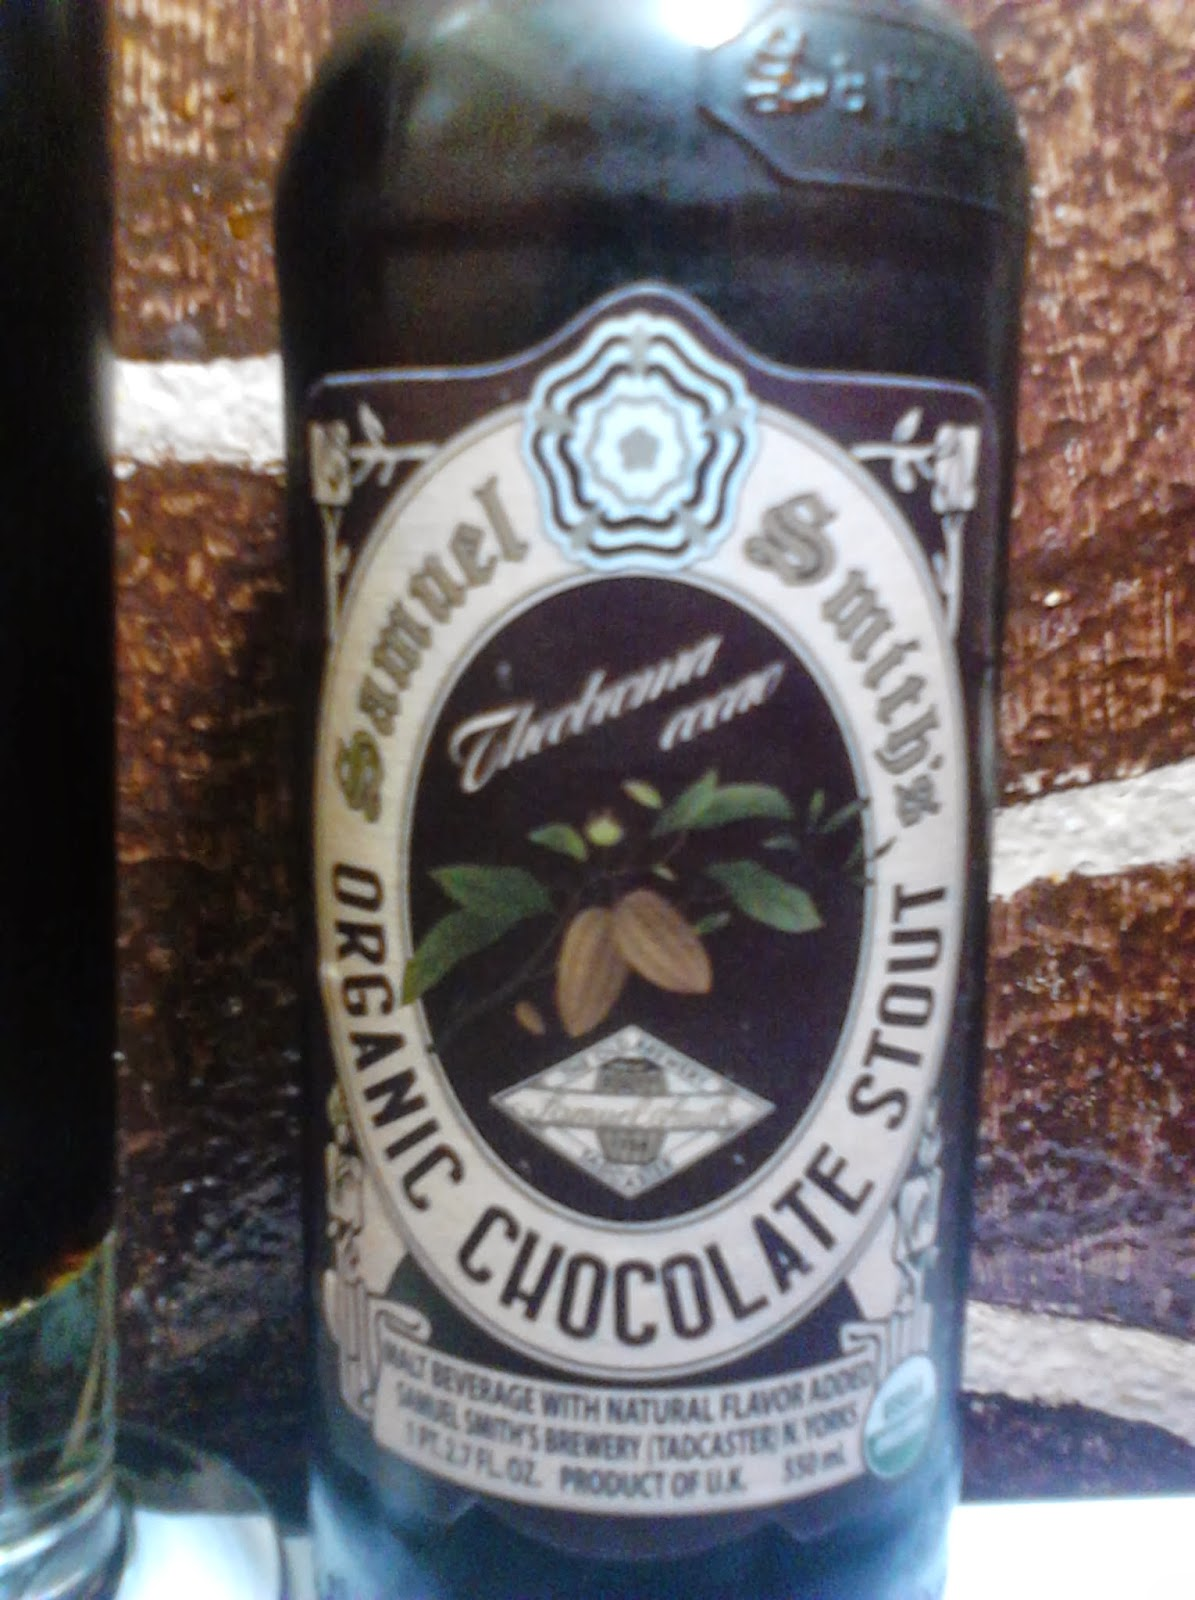 Samuel smith's Organic Chocolate Stout pic